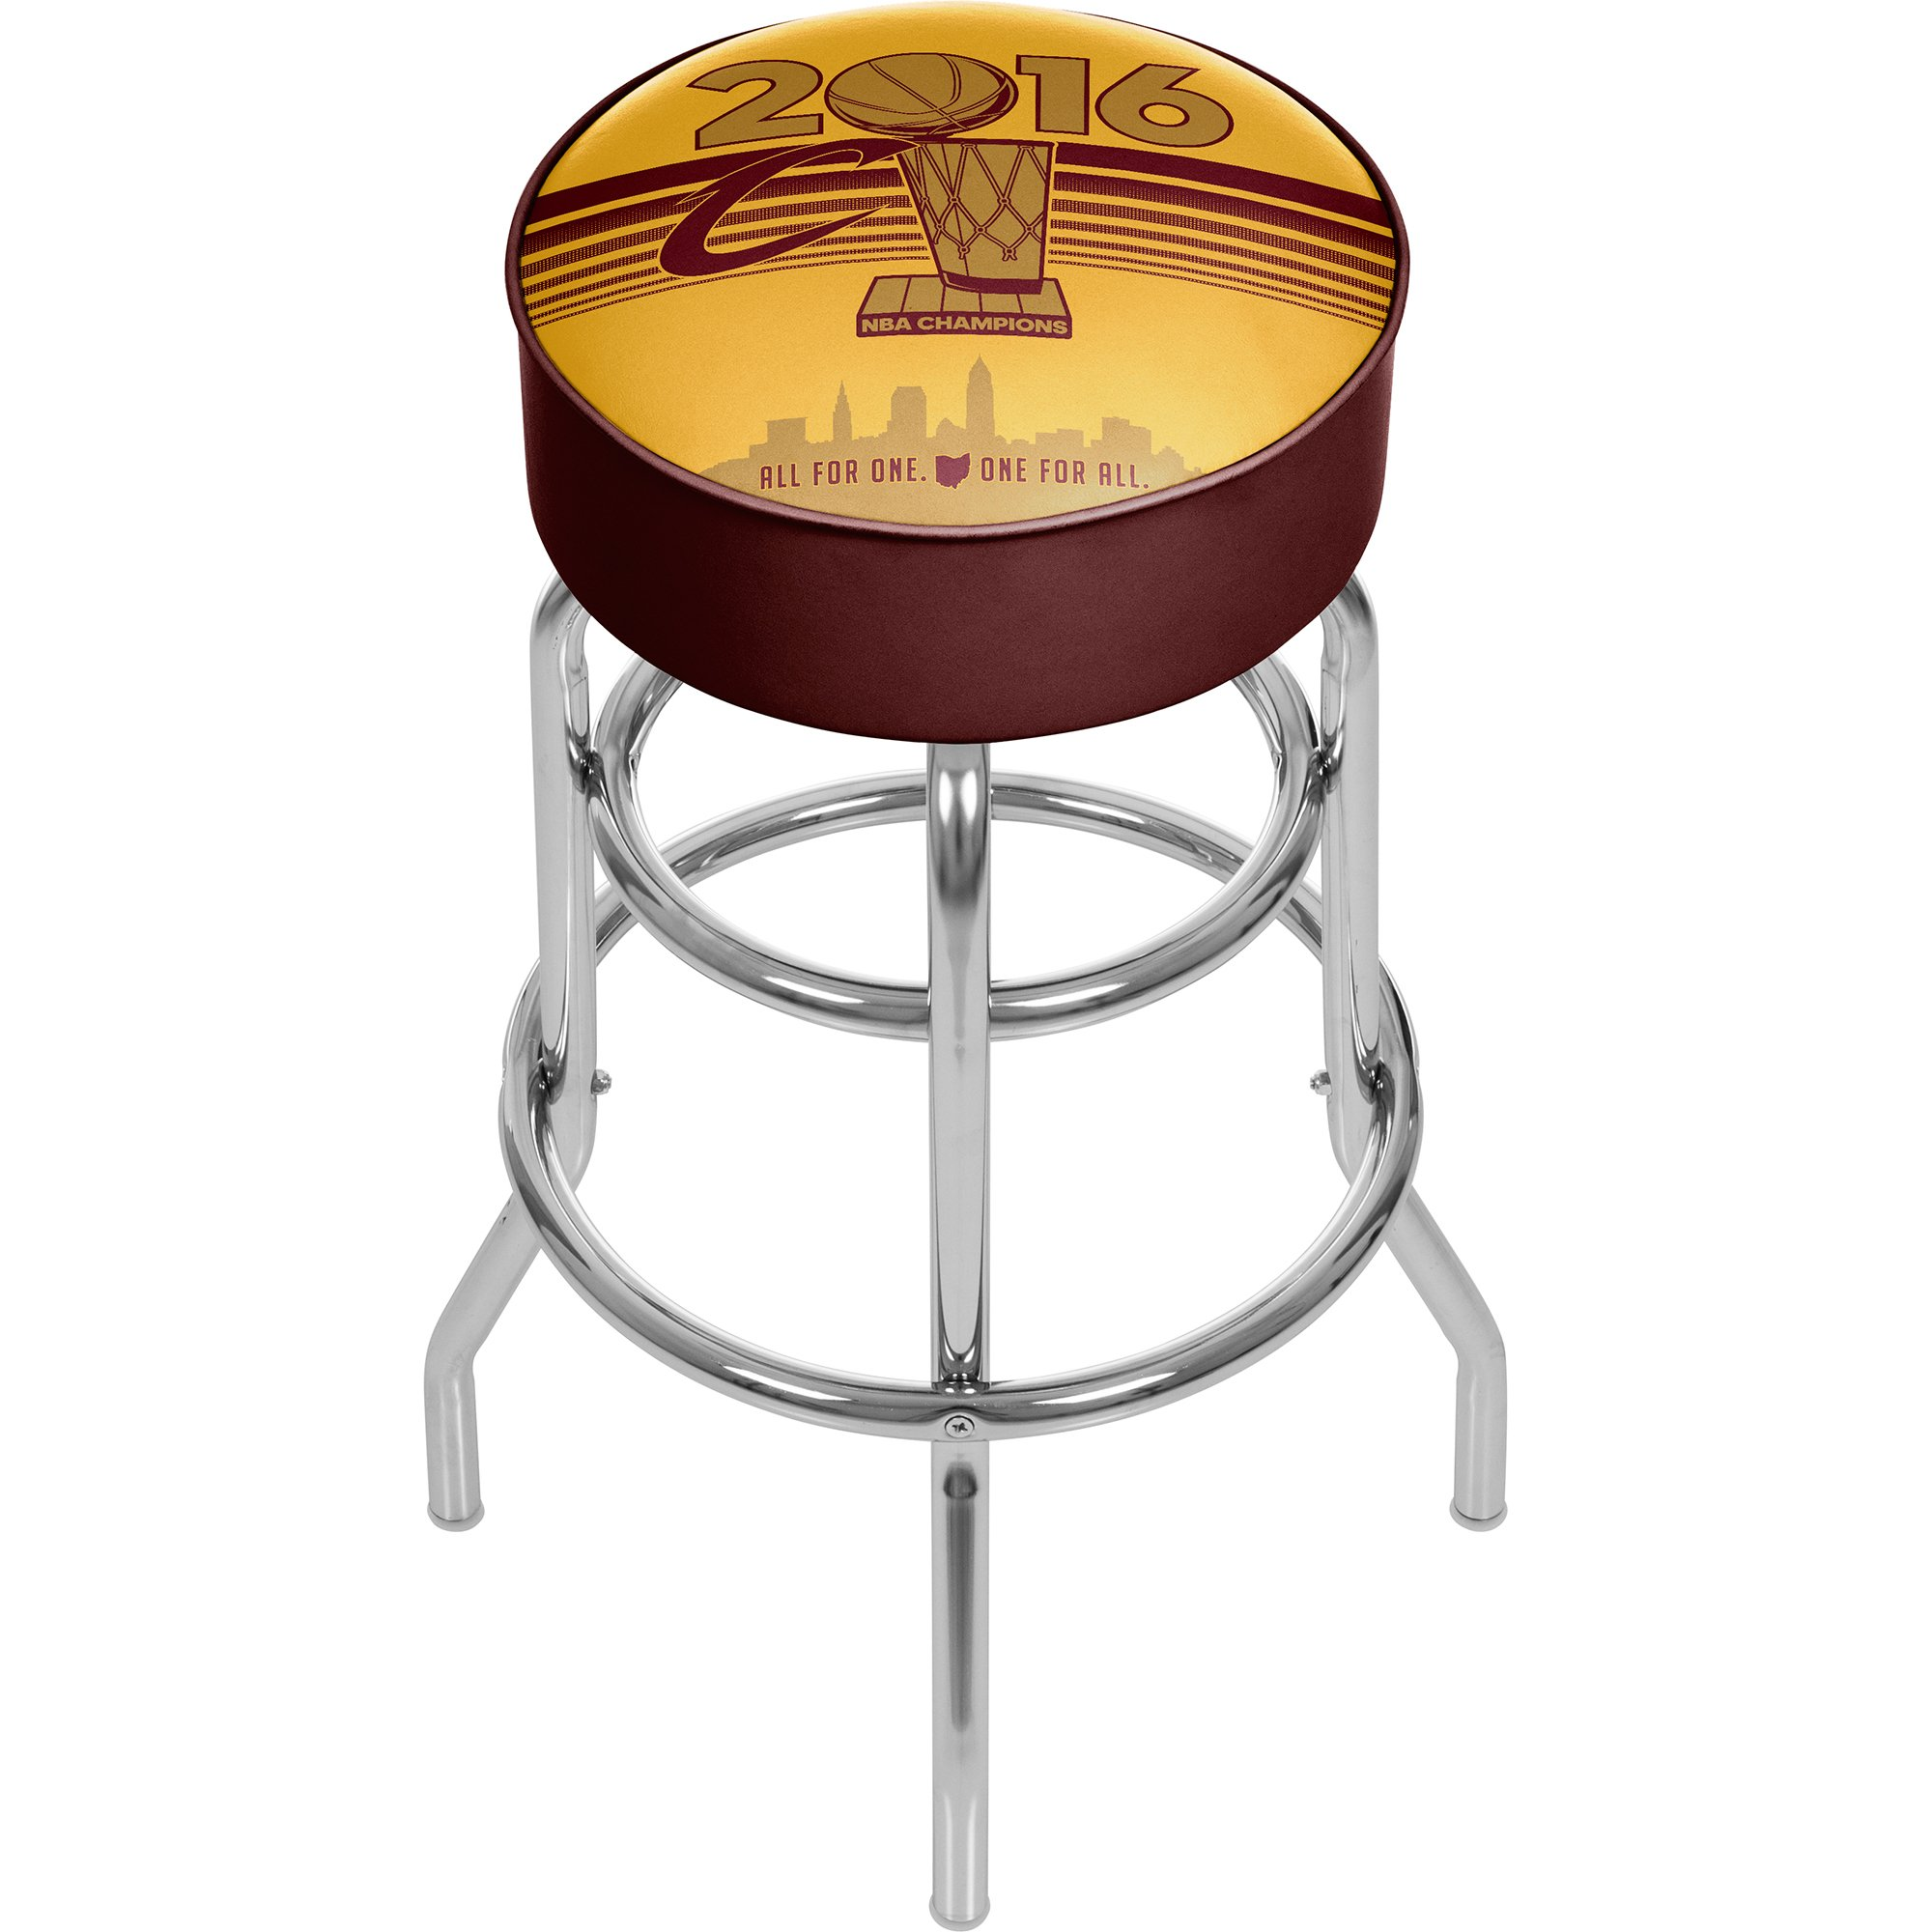 NBA Cleveland Cavaliers 2016 Chamipons Chrome bar Stool, Wine/Gold, One Size